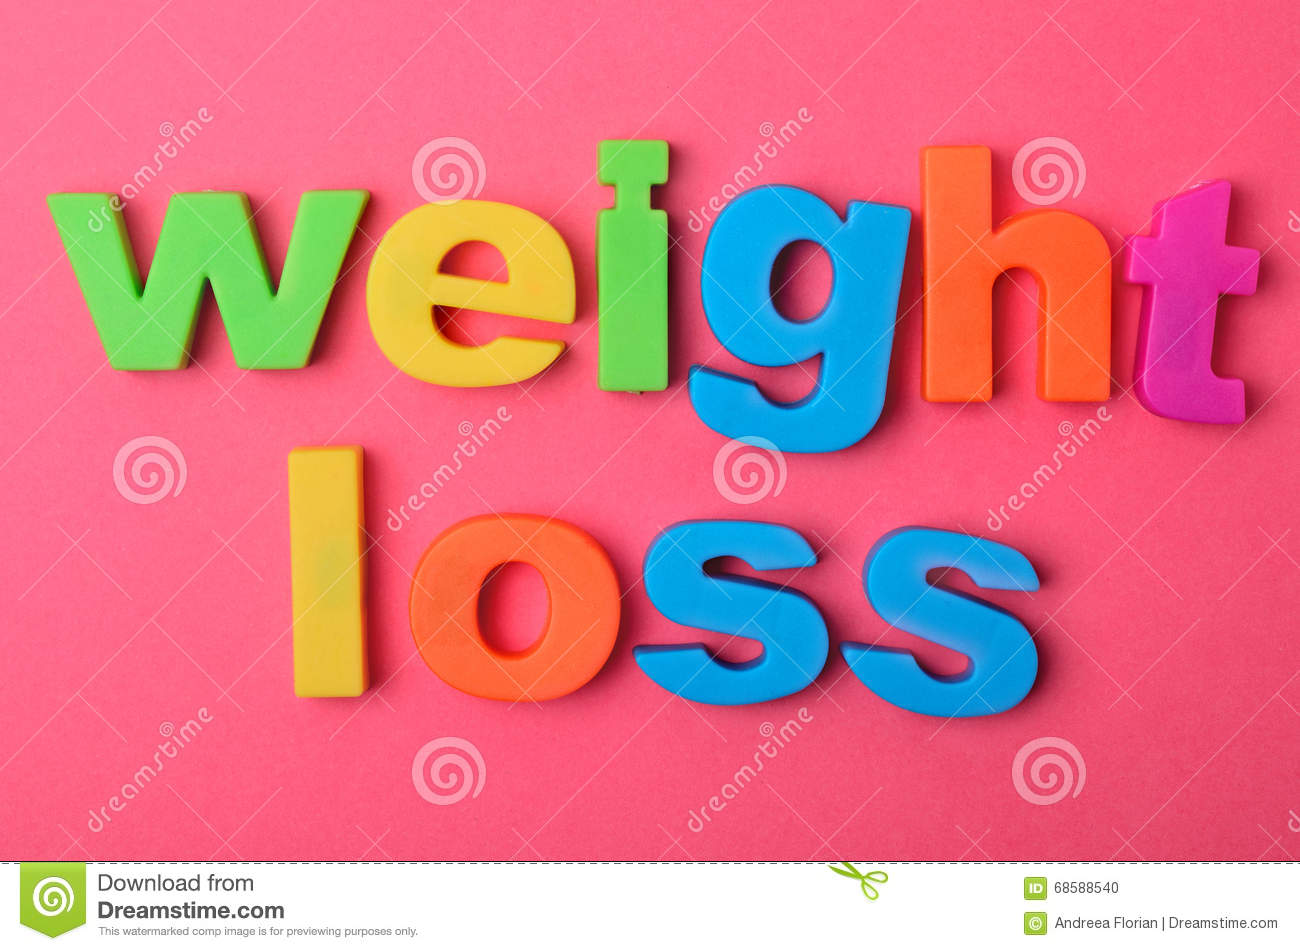 Image result for images with the words weight loss on them